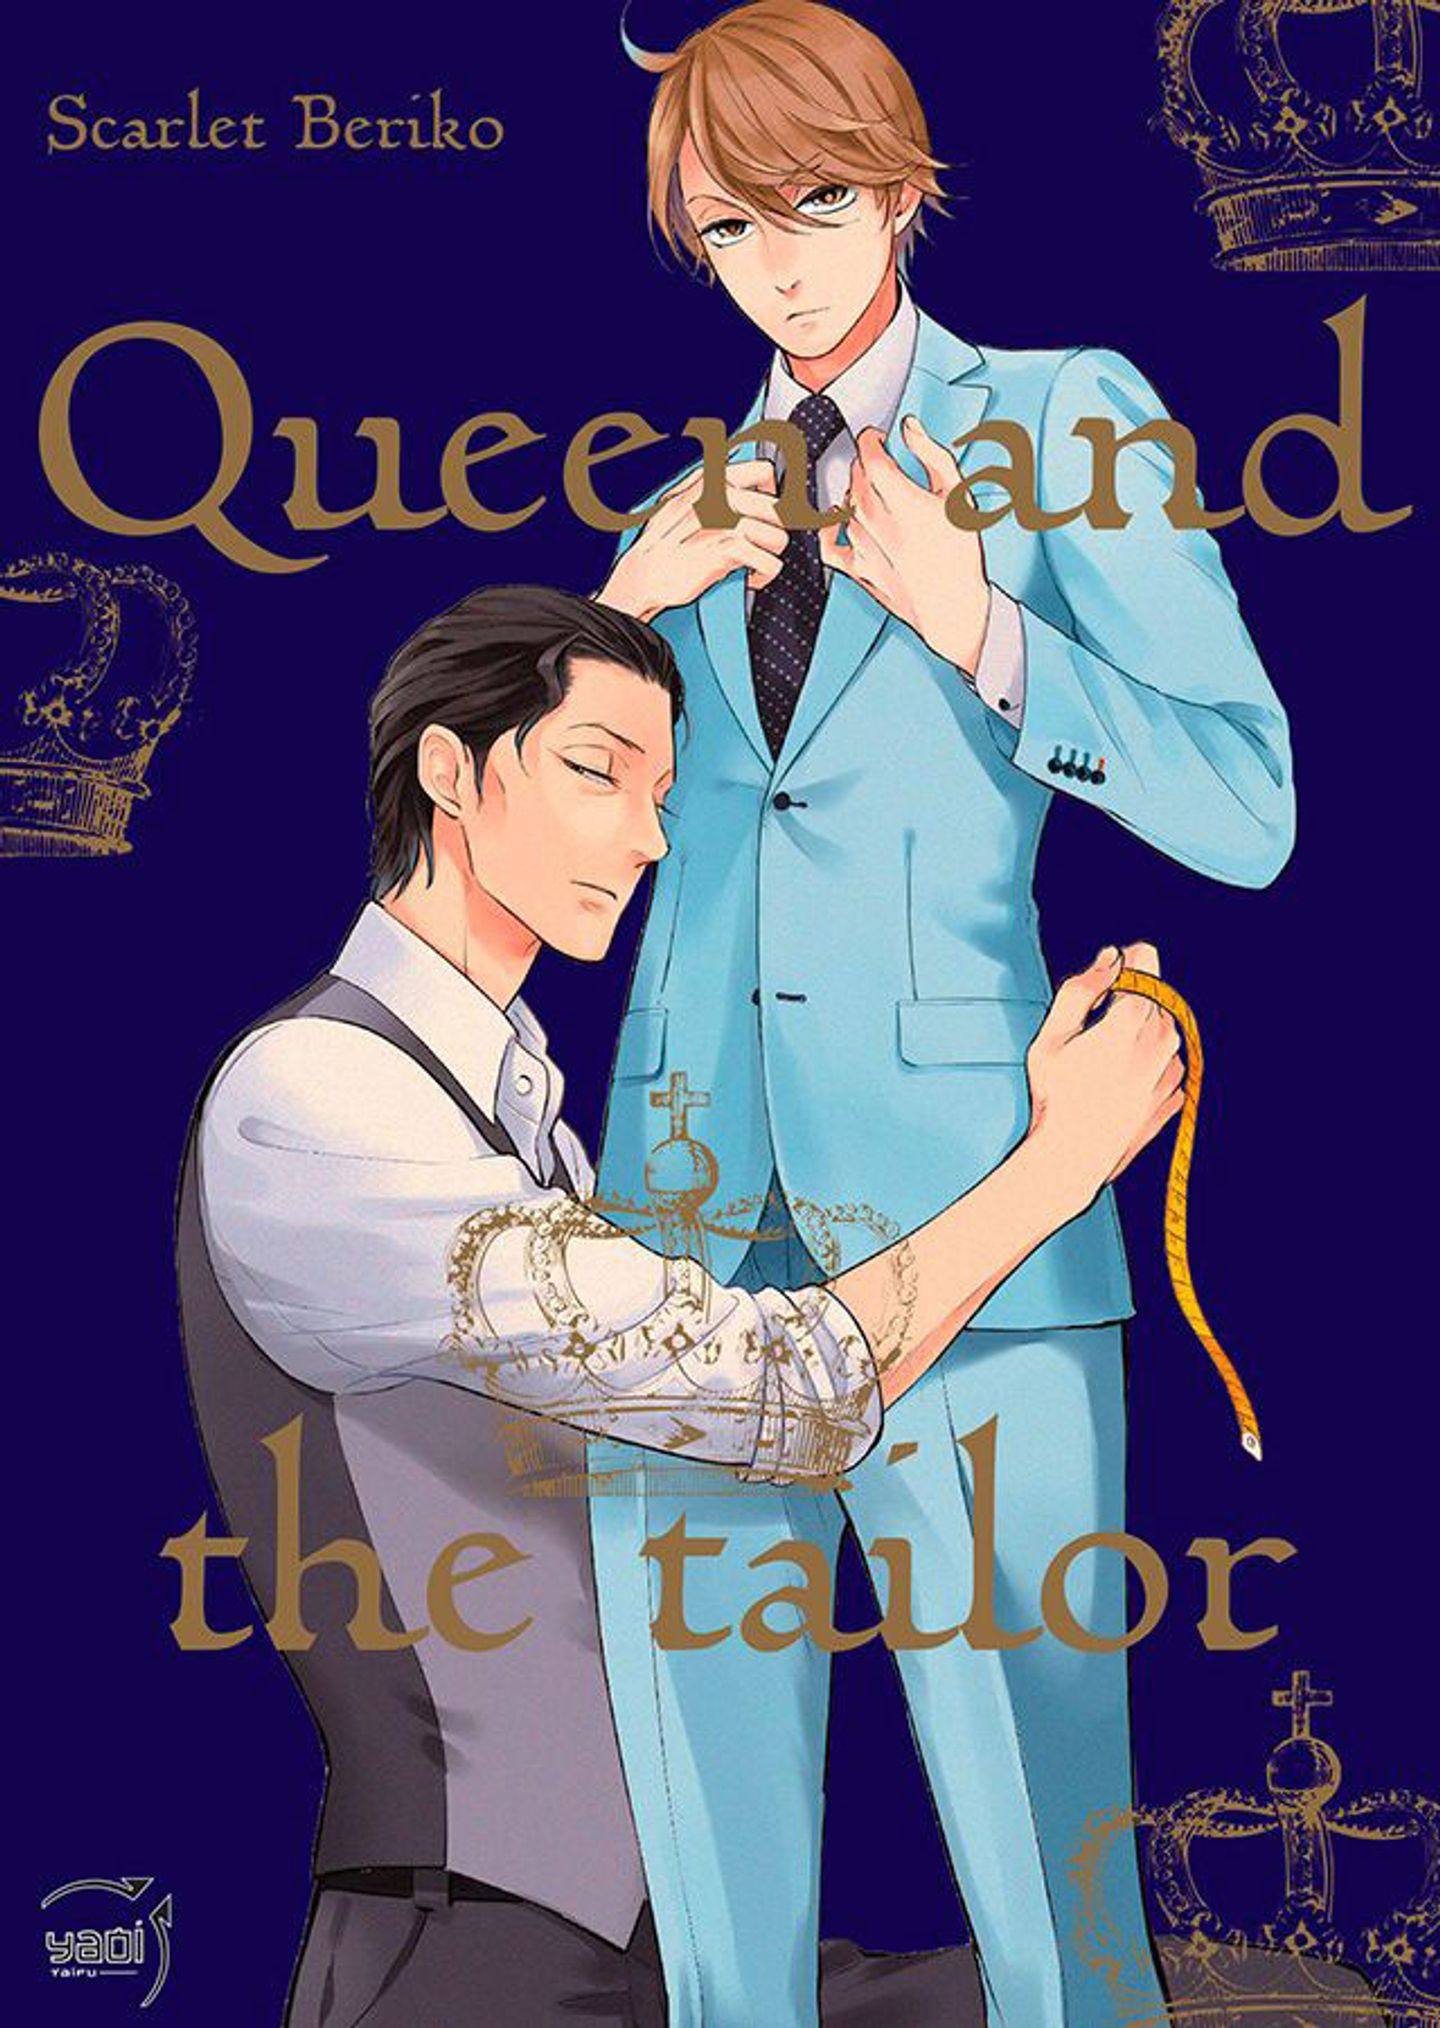 Queen and the tailor yaoi manga gay